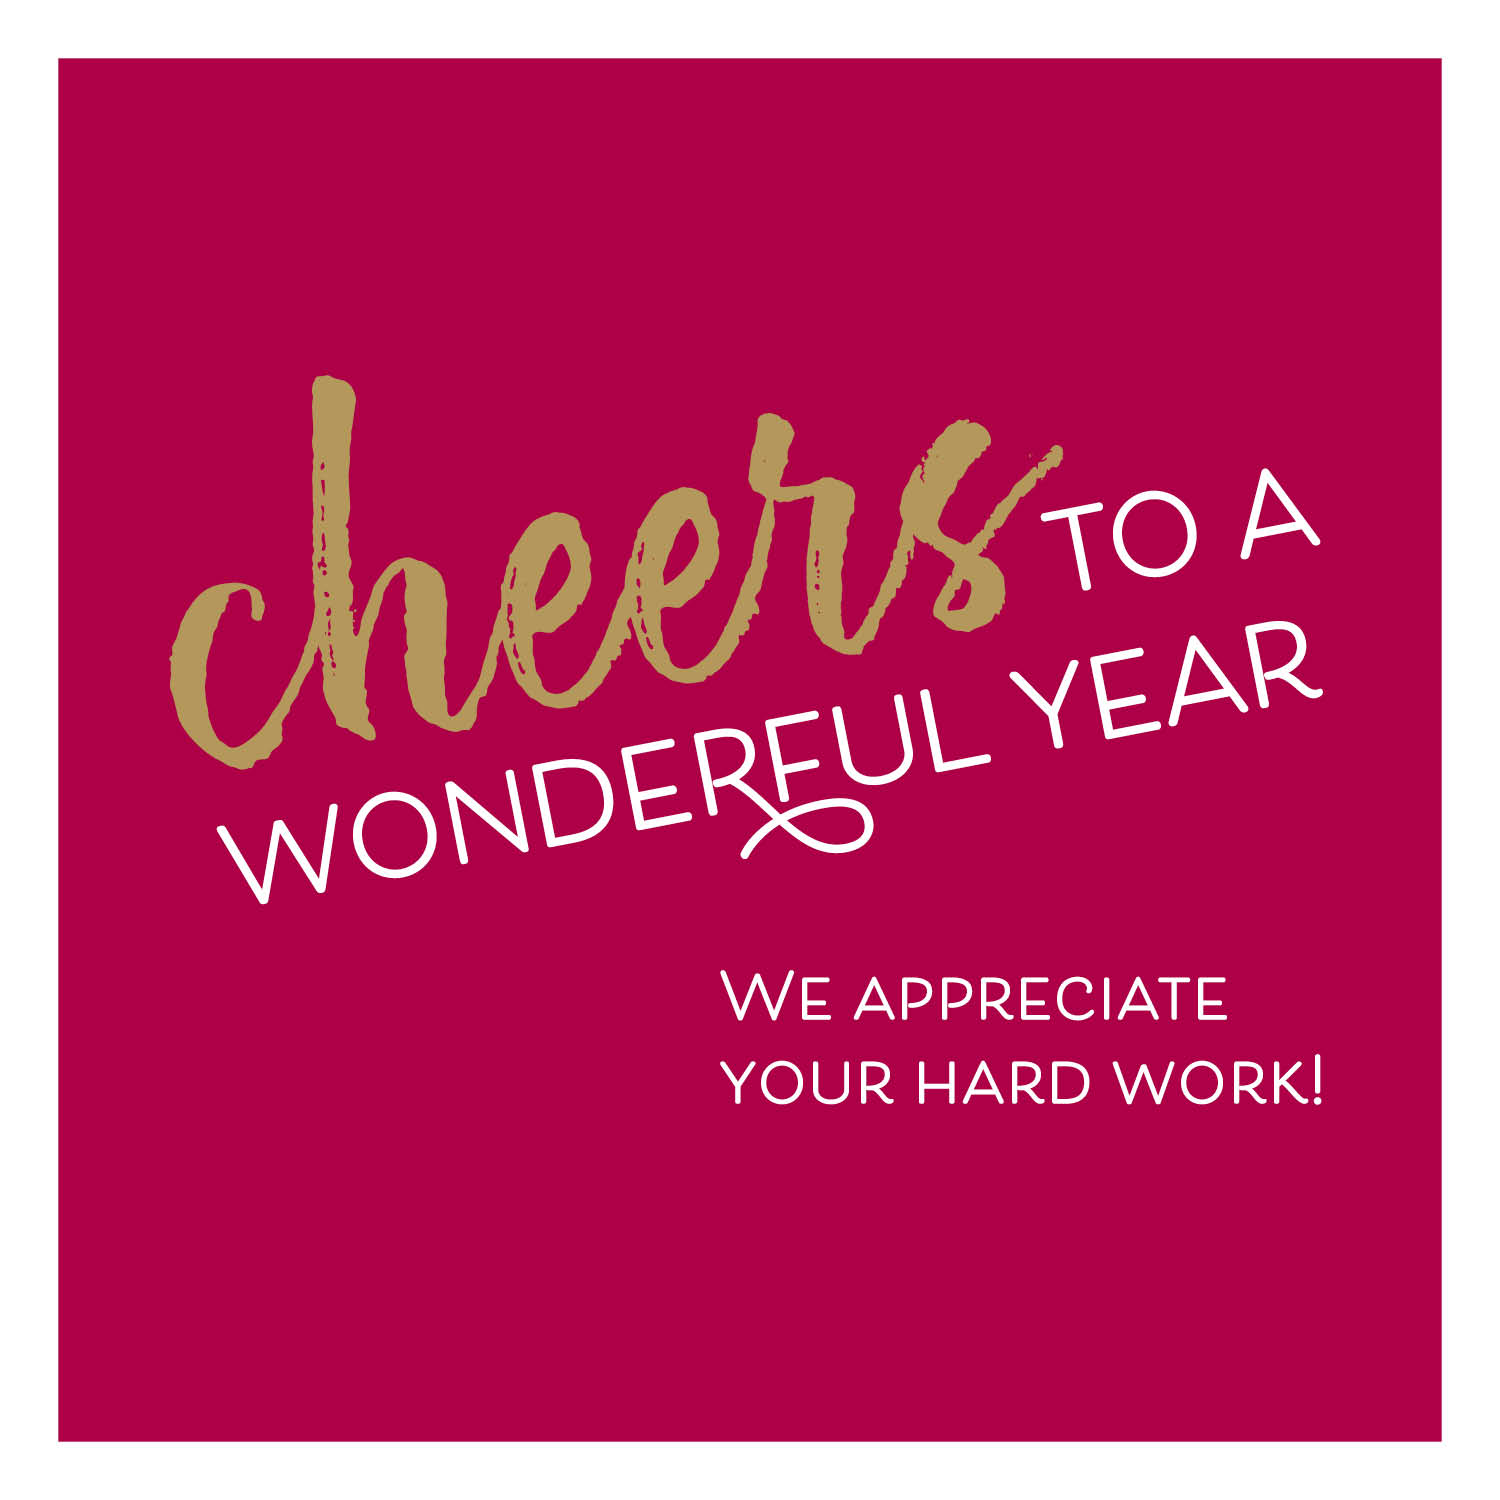 Cheers to a wonderful year